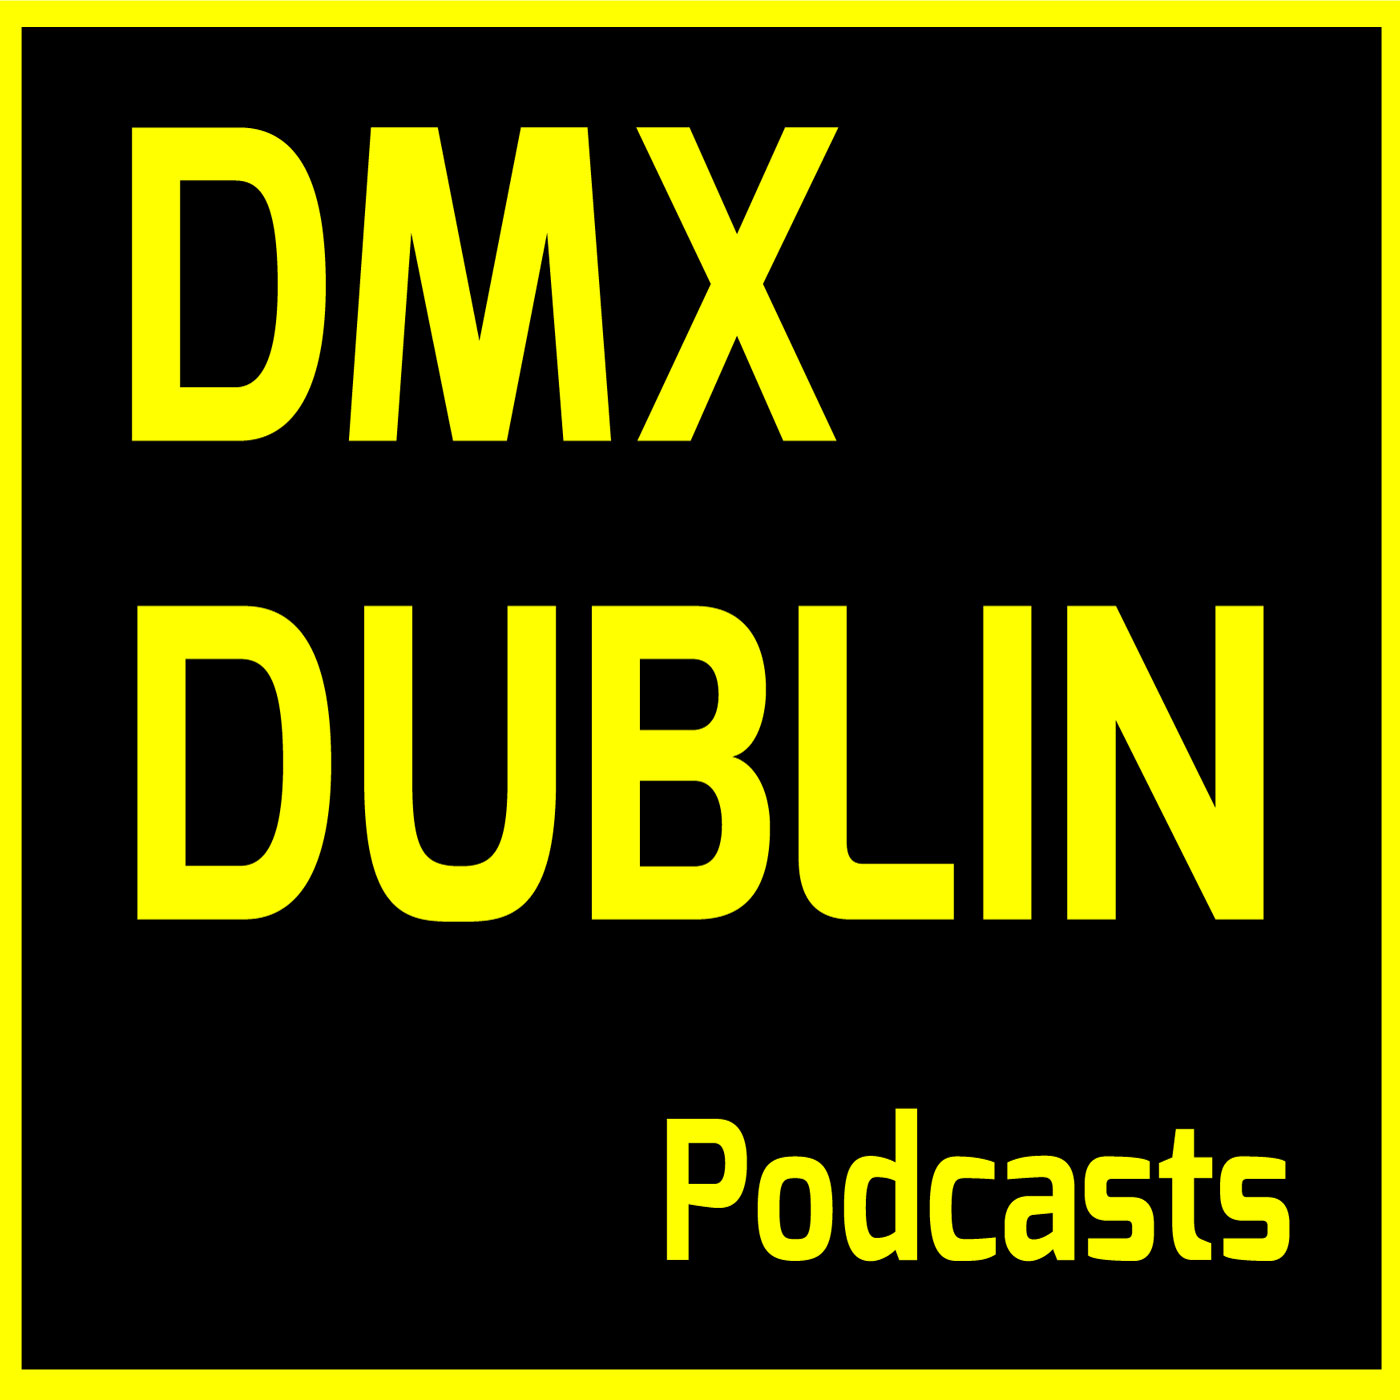 DMX Dublin Podcasts